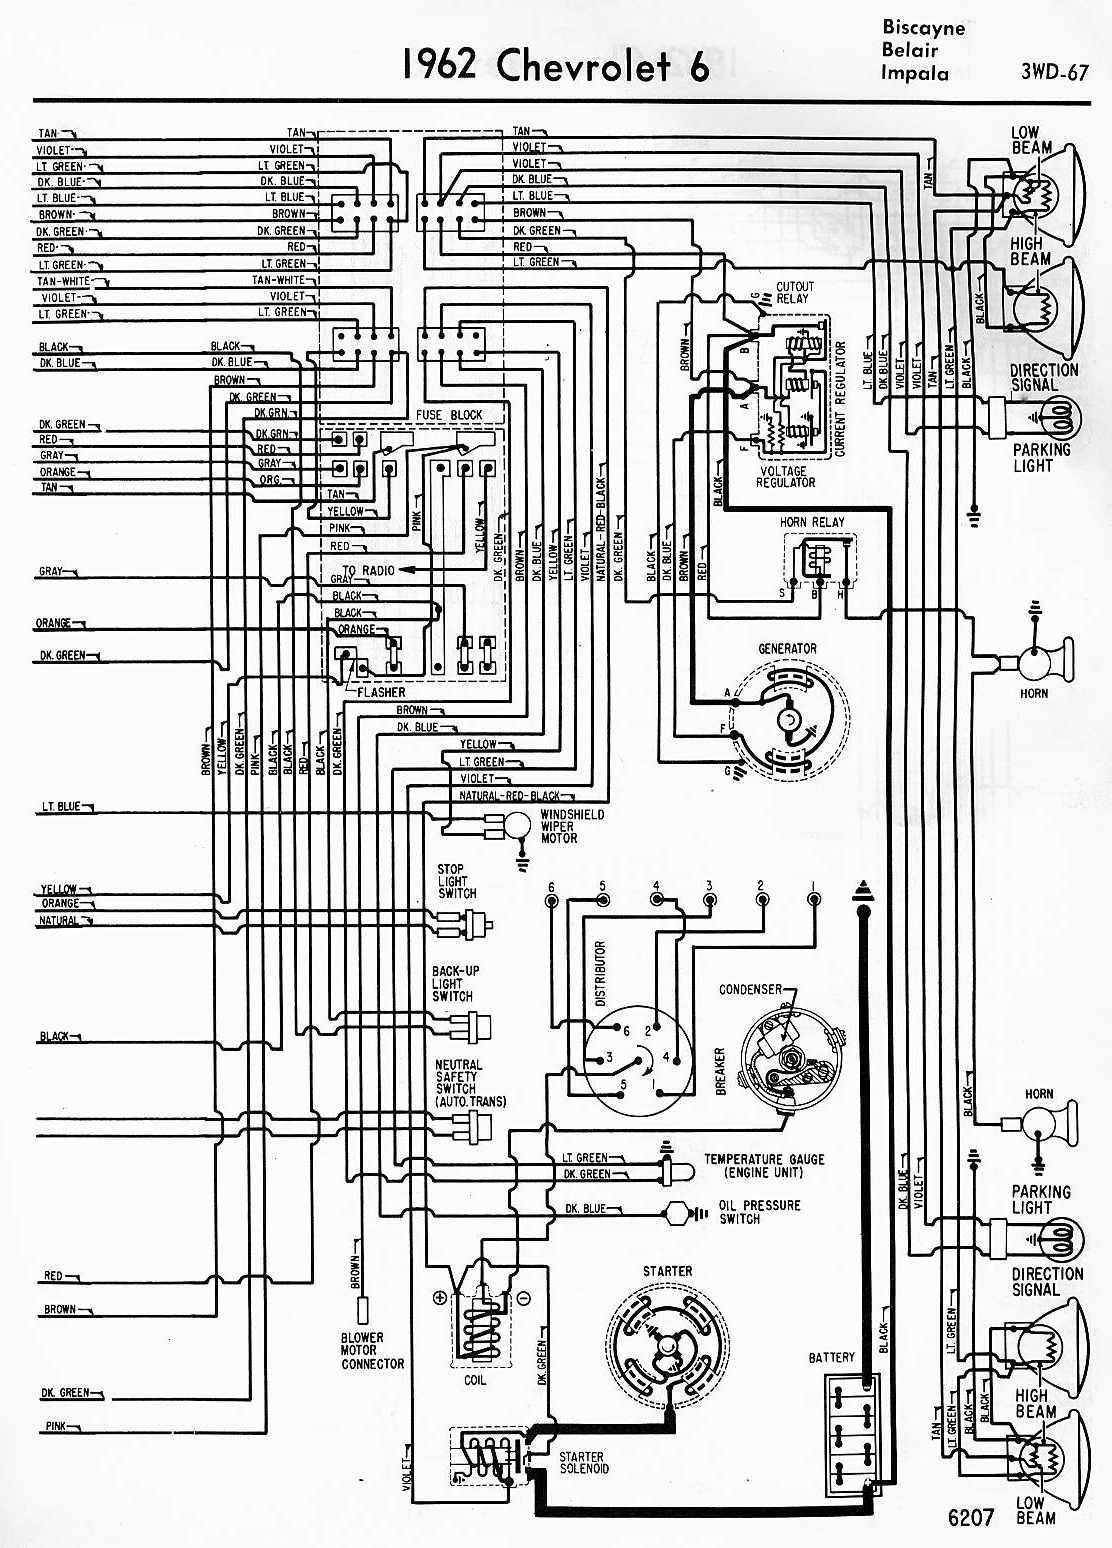 medium resolution of 1966 chevrolet impala wiring diagram free picture wiring diagram jeep wrangler wiring schematic 1966 impala wire